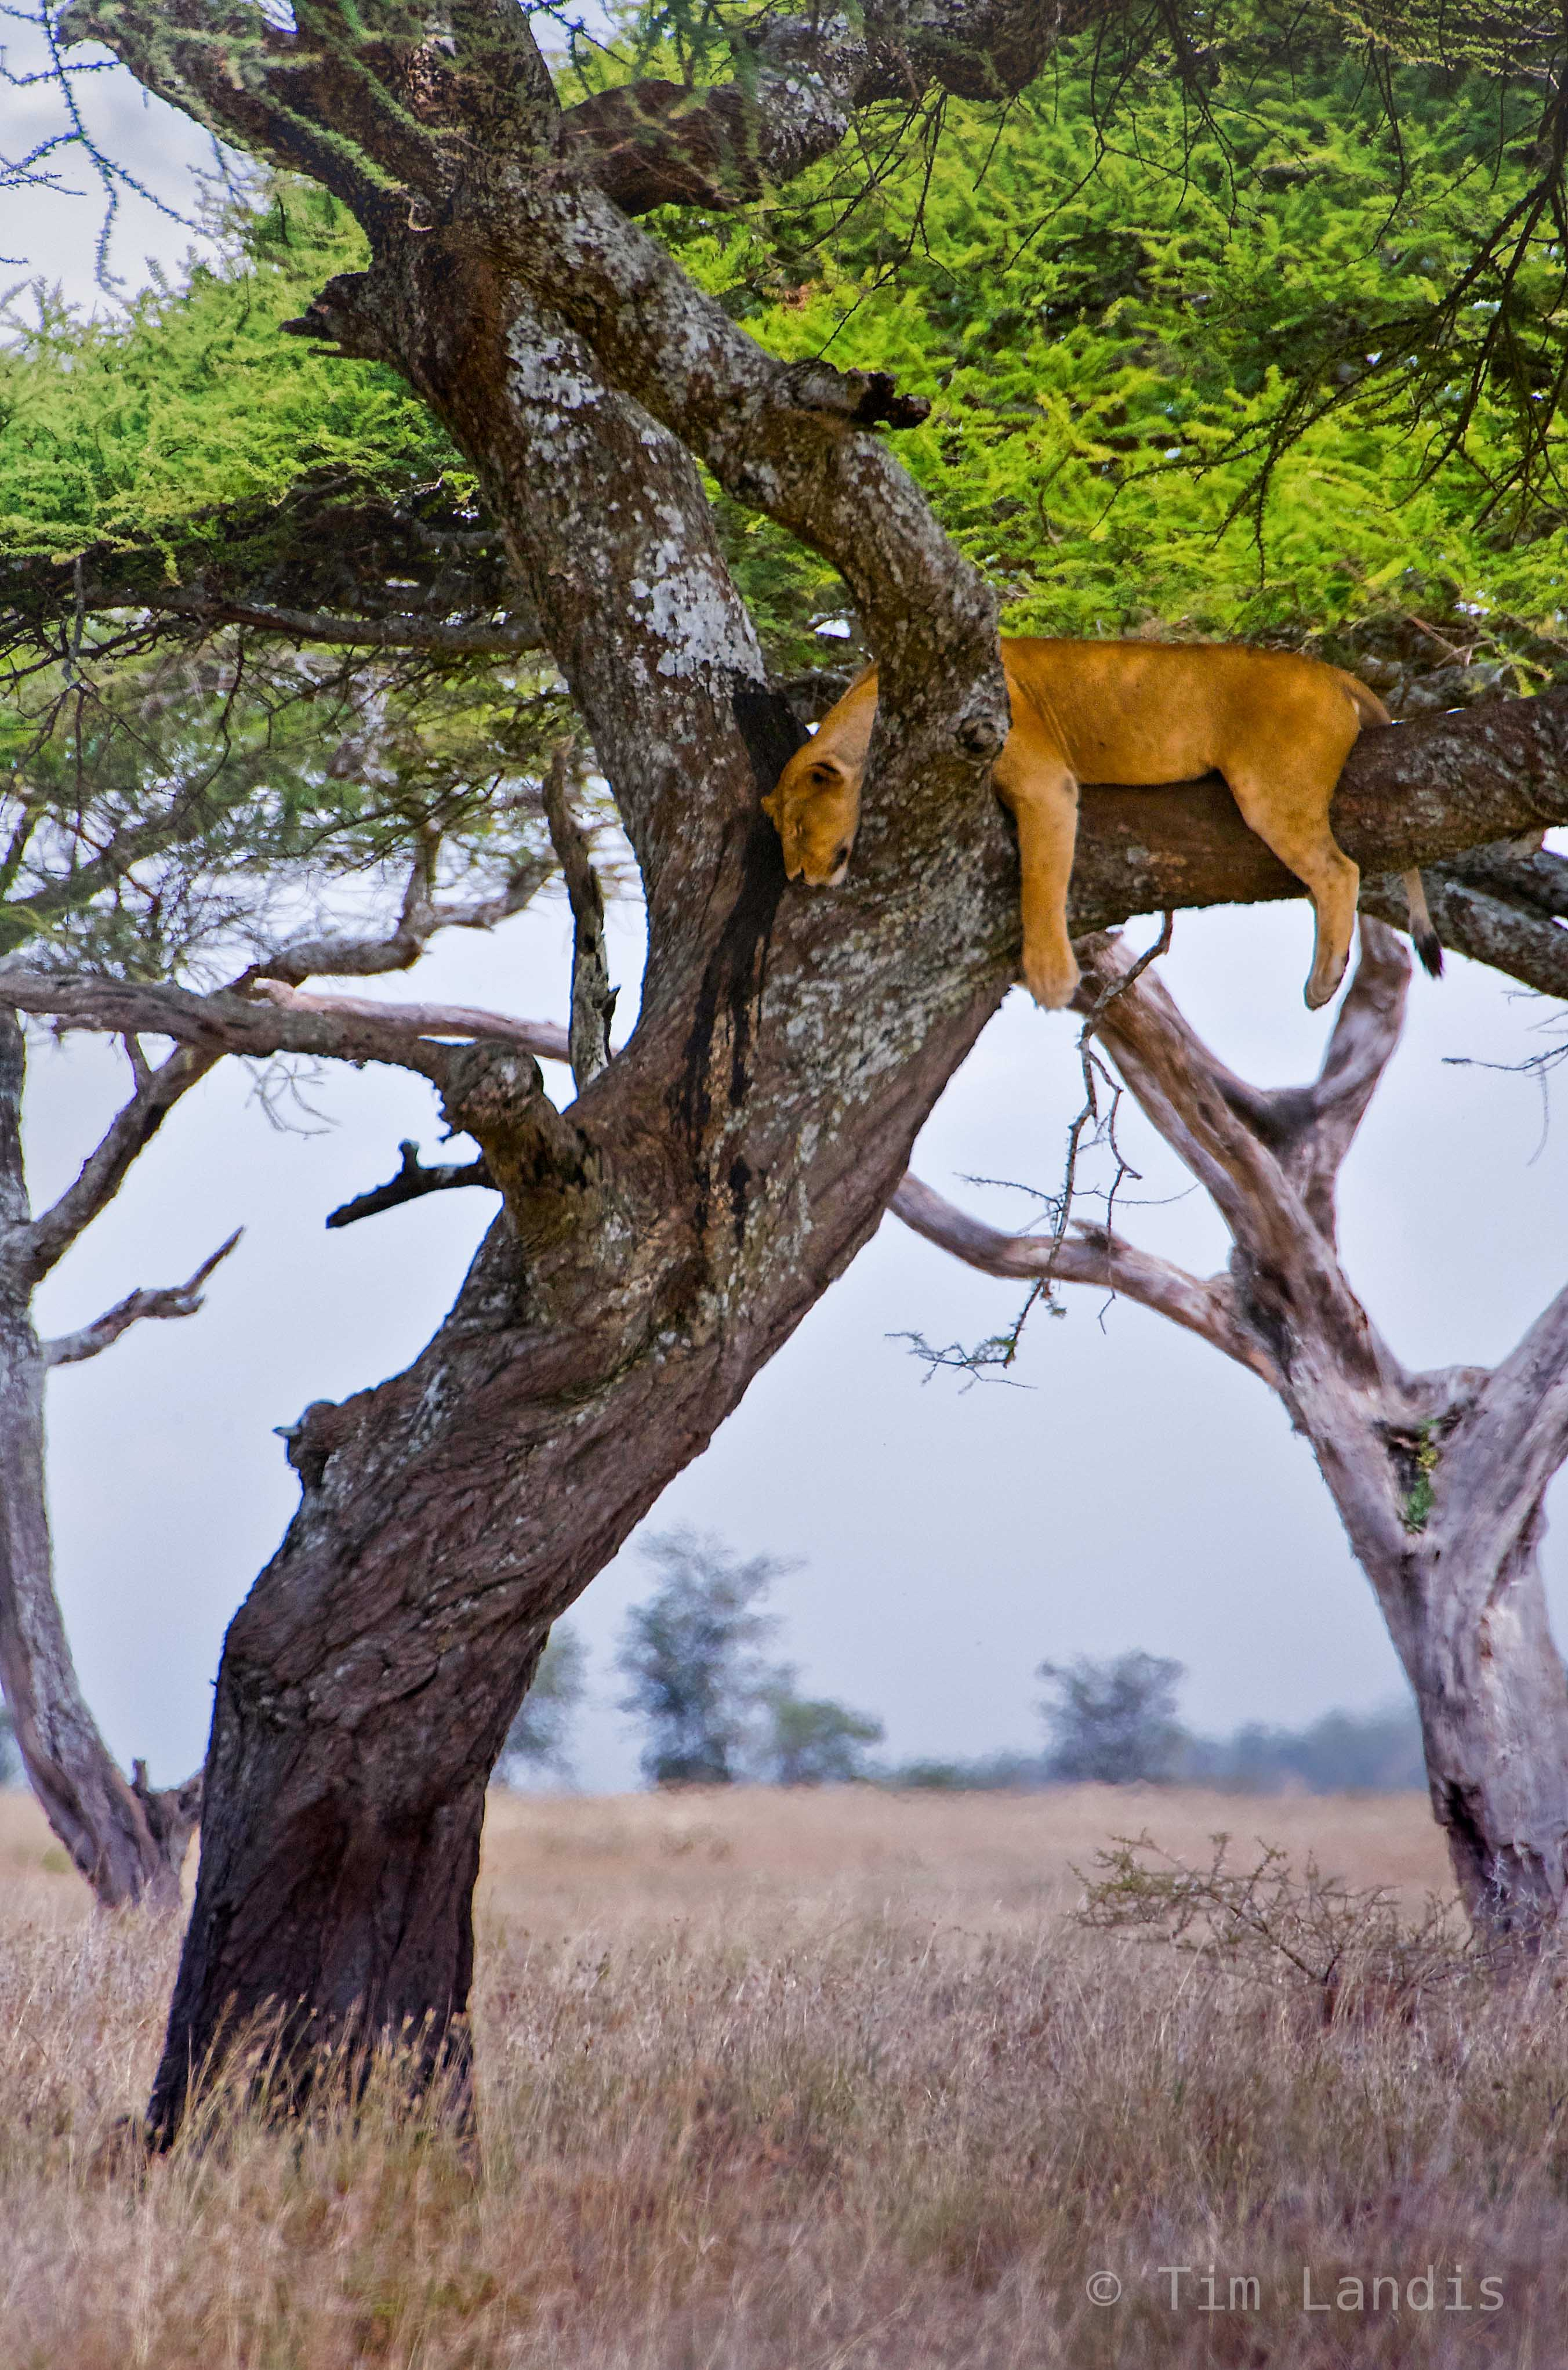 Africa, Lions in Tree, Serengeti Sopa Lodge, napping, naps, sleeping in trees, photo